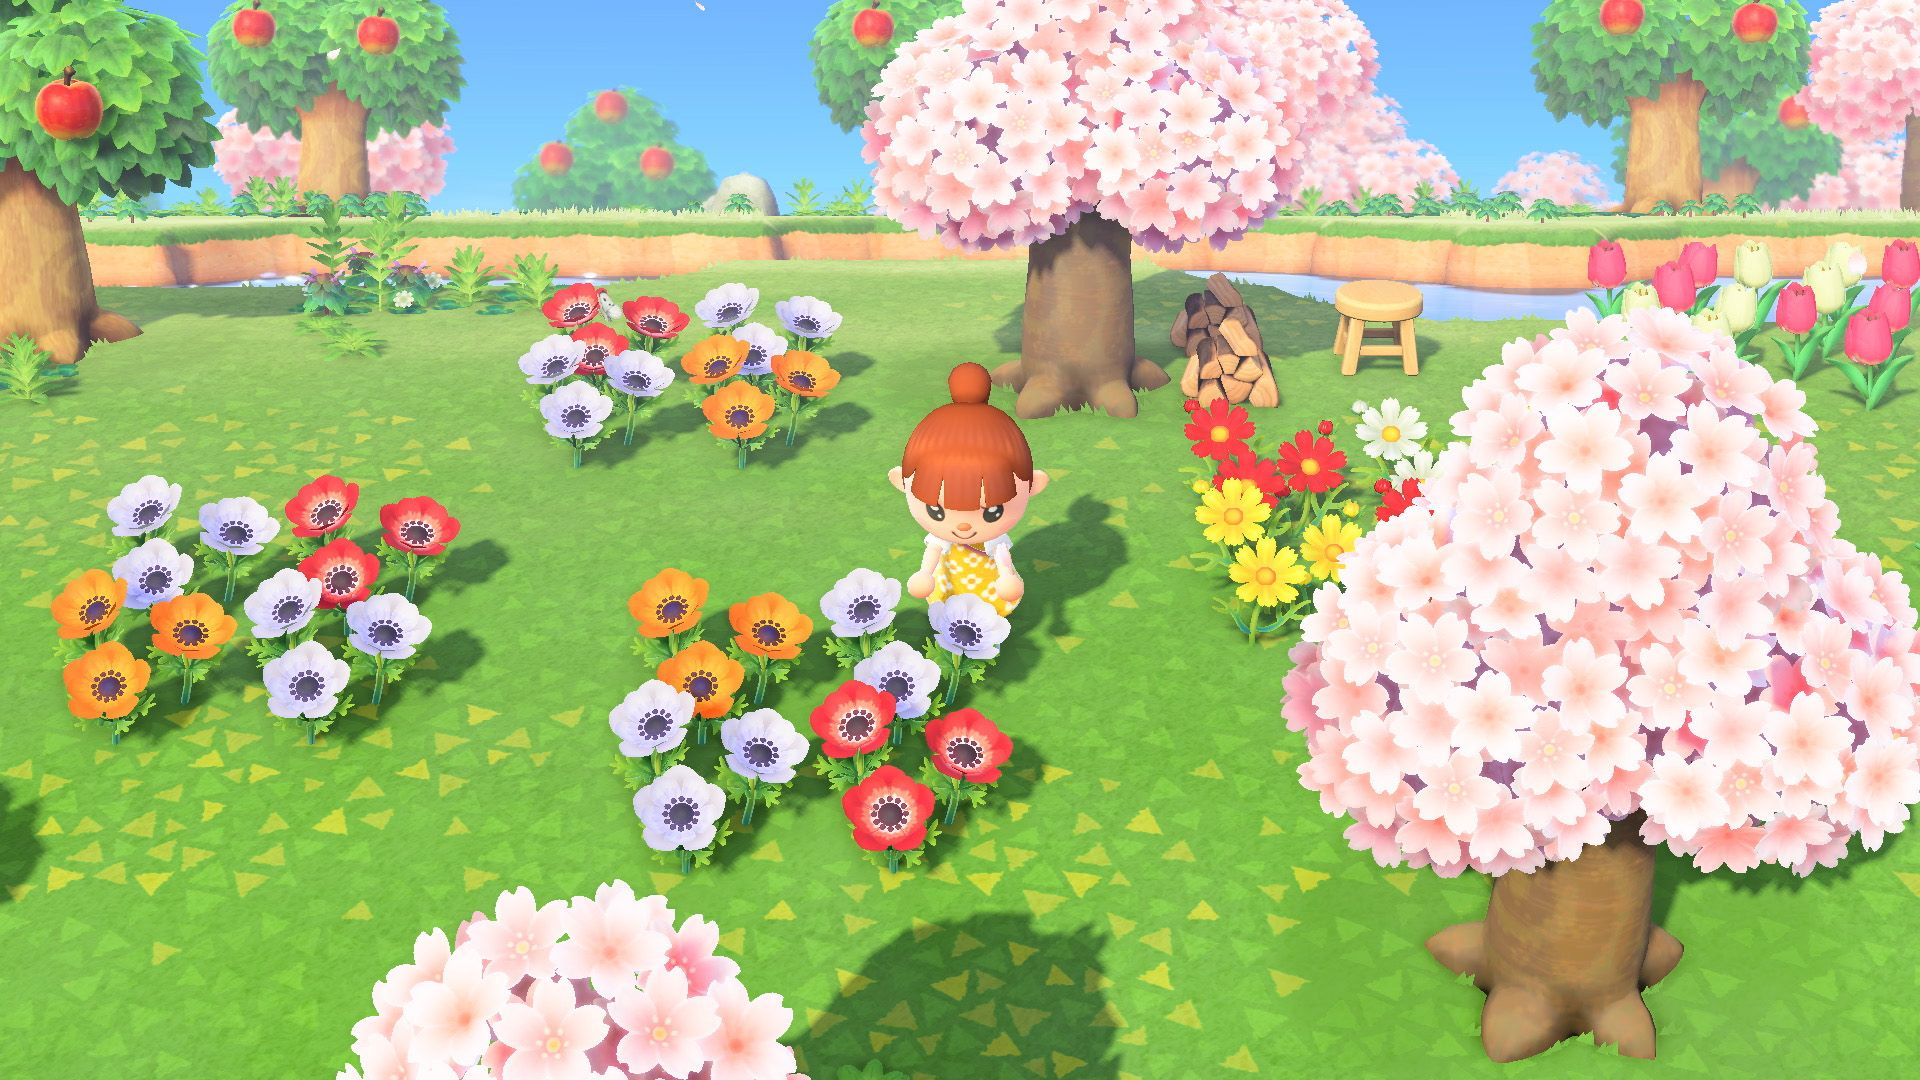 The Cherry Blossom Petals Are A Special Spring Seasonal Crafting Material In Animal Crossing New Horizons Cherry Blossom Petals Animal Crossing Flower Guide